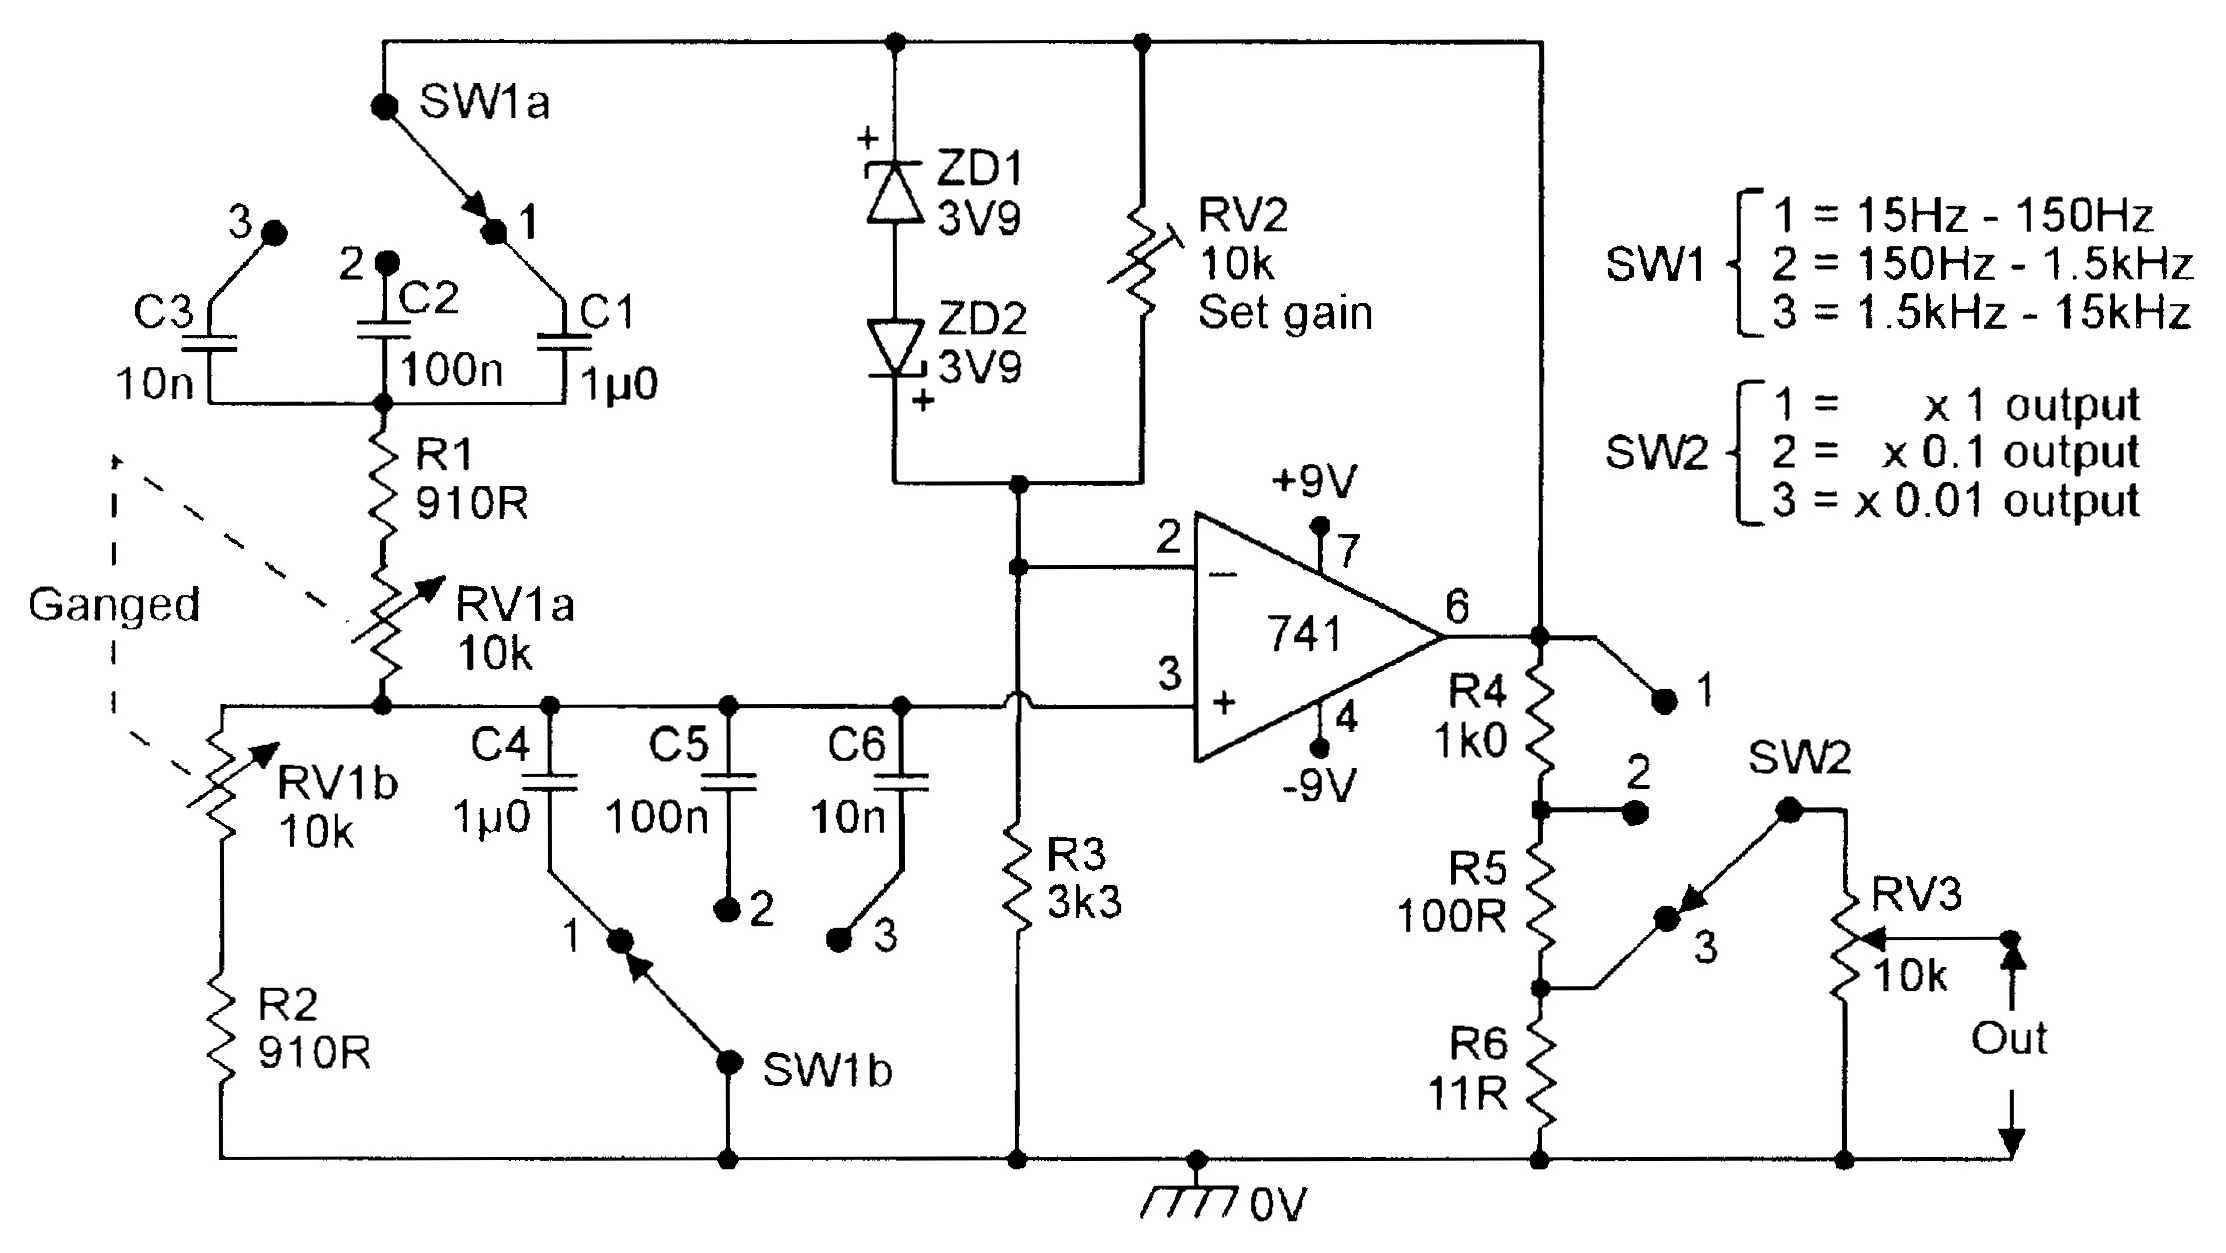 Op Amp Cookbook Part 3 Nuts Volts Magazine How To Connect The Lm741 Chip A Circuit Figure 7 Three Decade 15hz 15khz Wien Bridge Oscillator